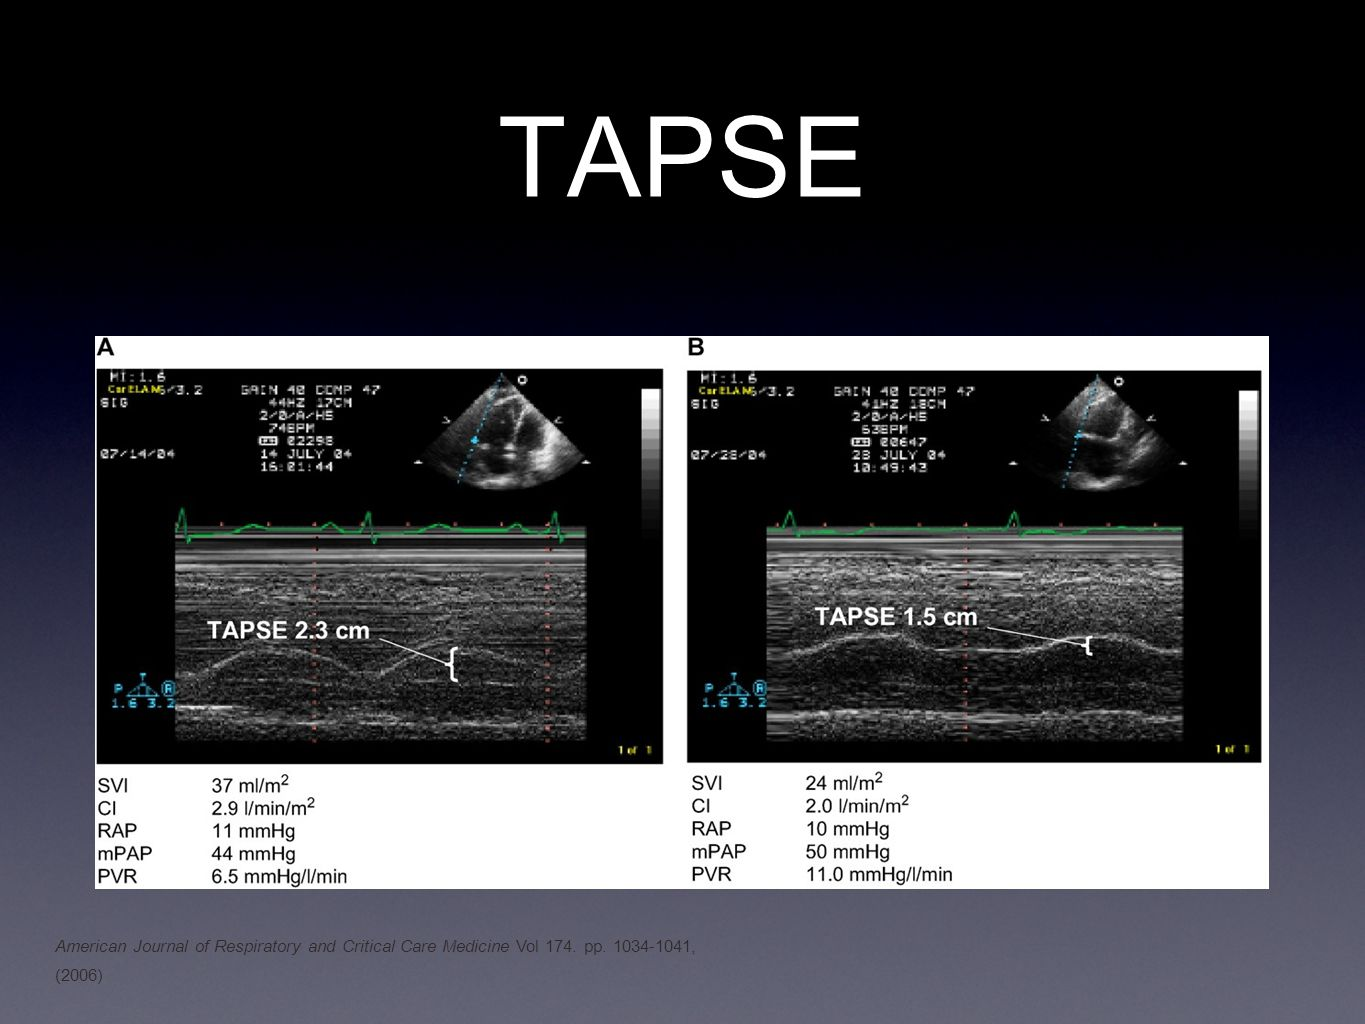 TAPSE American Journal of Respiratory and Critical Care Medicine Vol 174. pp. 1034-1041, (2006)